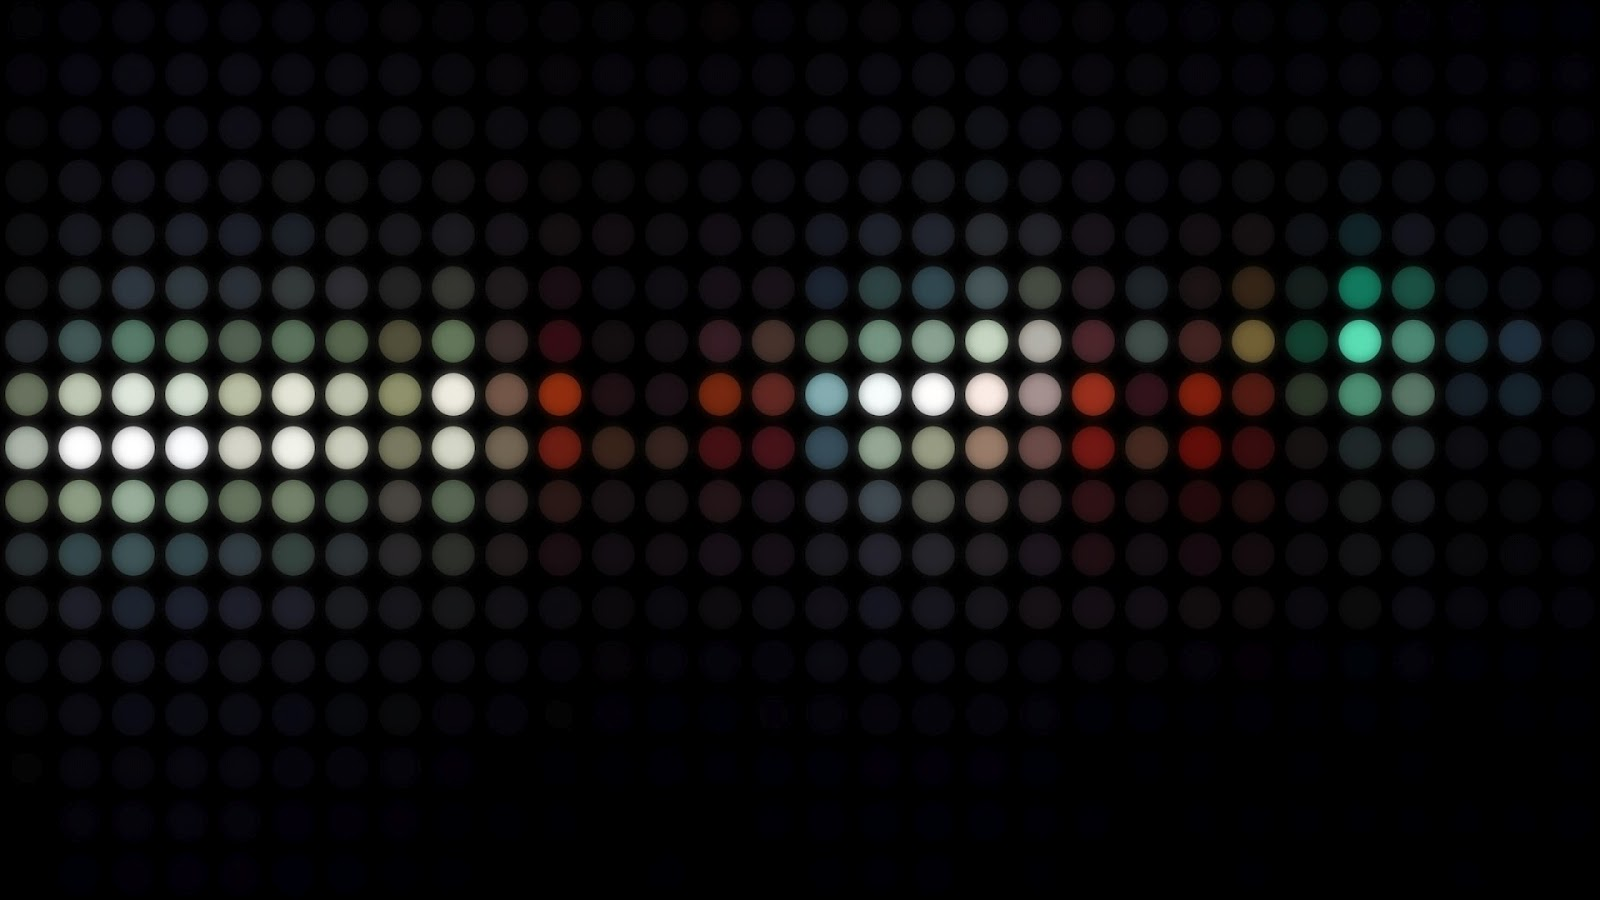 Luces Diodos Led Wallpapers